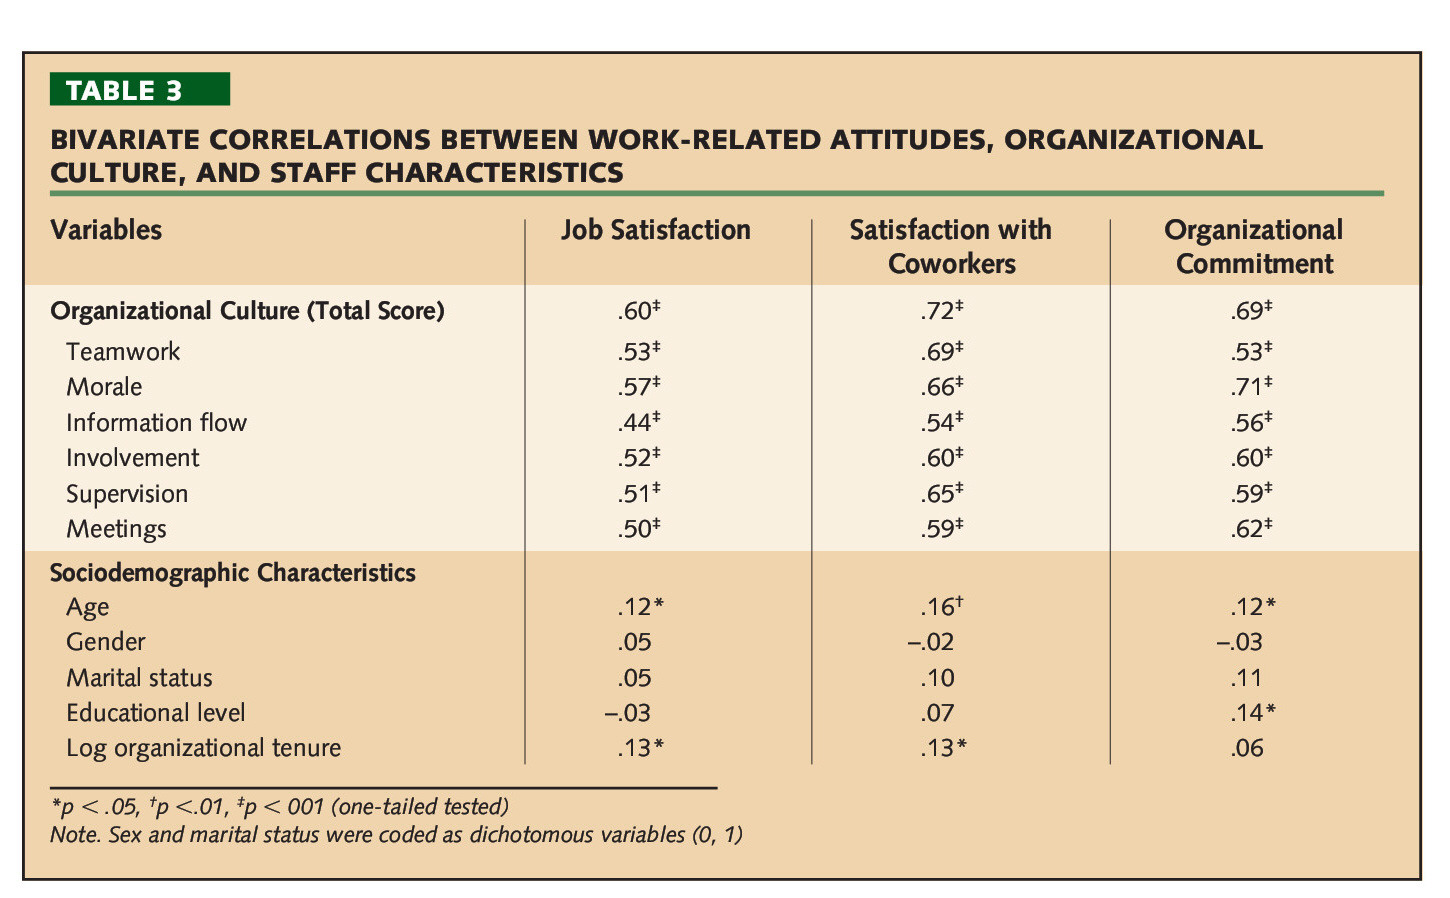 TABLE 3BIVARIATE CORRELATIONS BETWEEN WORK-RELATED ATTITUDES, ORGANIZATIONAL CULTURE, AND STAFF CHARACTERISTICS